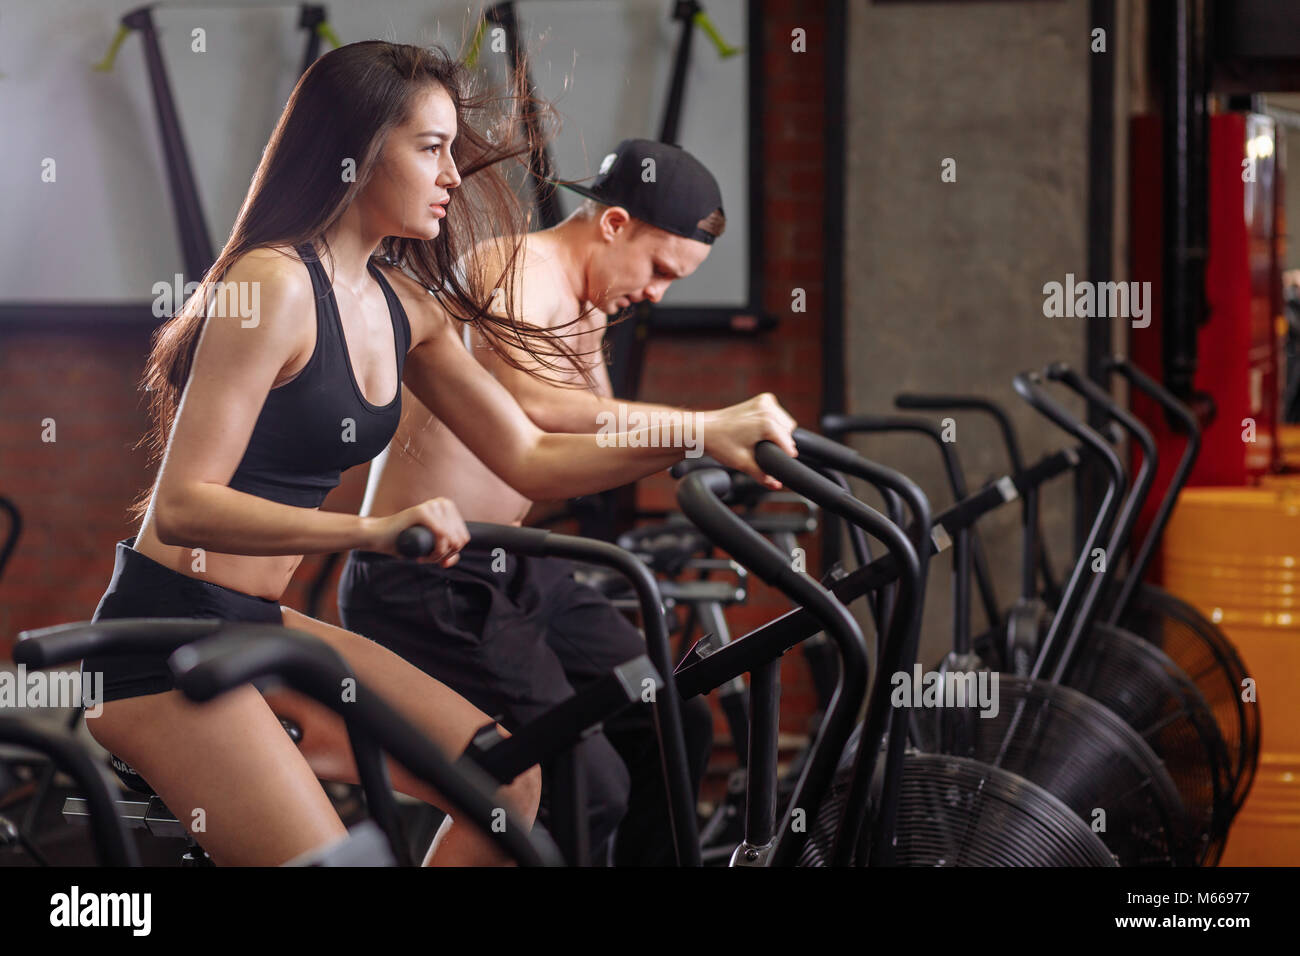 Woman And Man Biking In Gym Exercising Legs Doing Cardio Workout Cycling Bikes